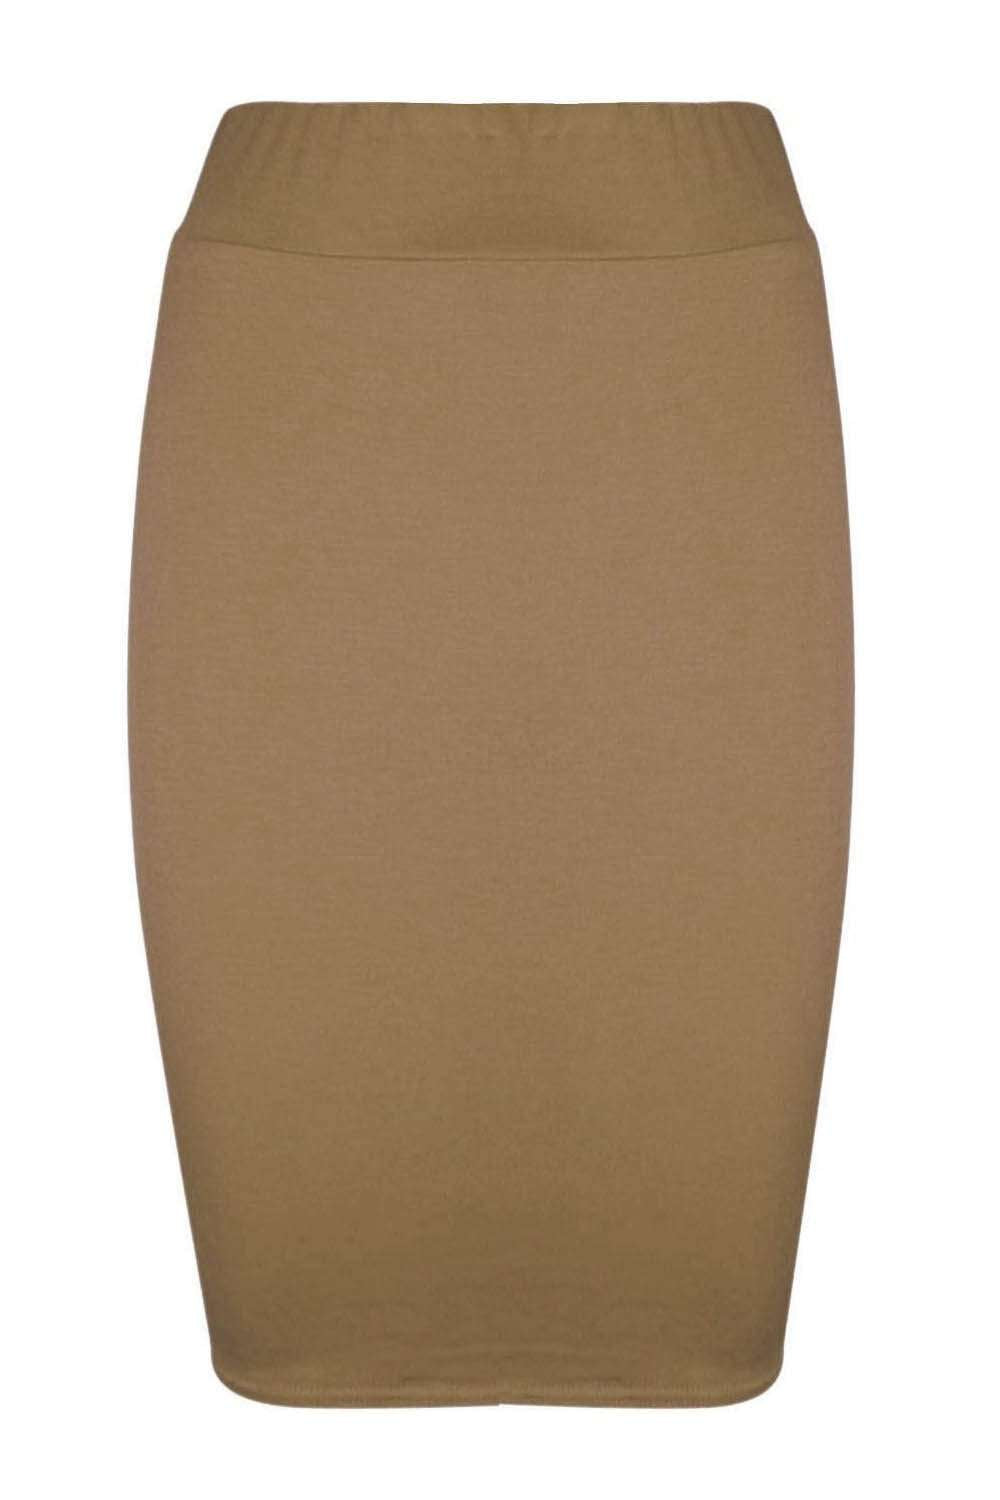 Hailsee High Waist Midi Pencil Skirt - bejealous-com